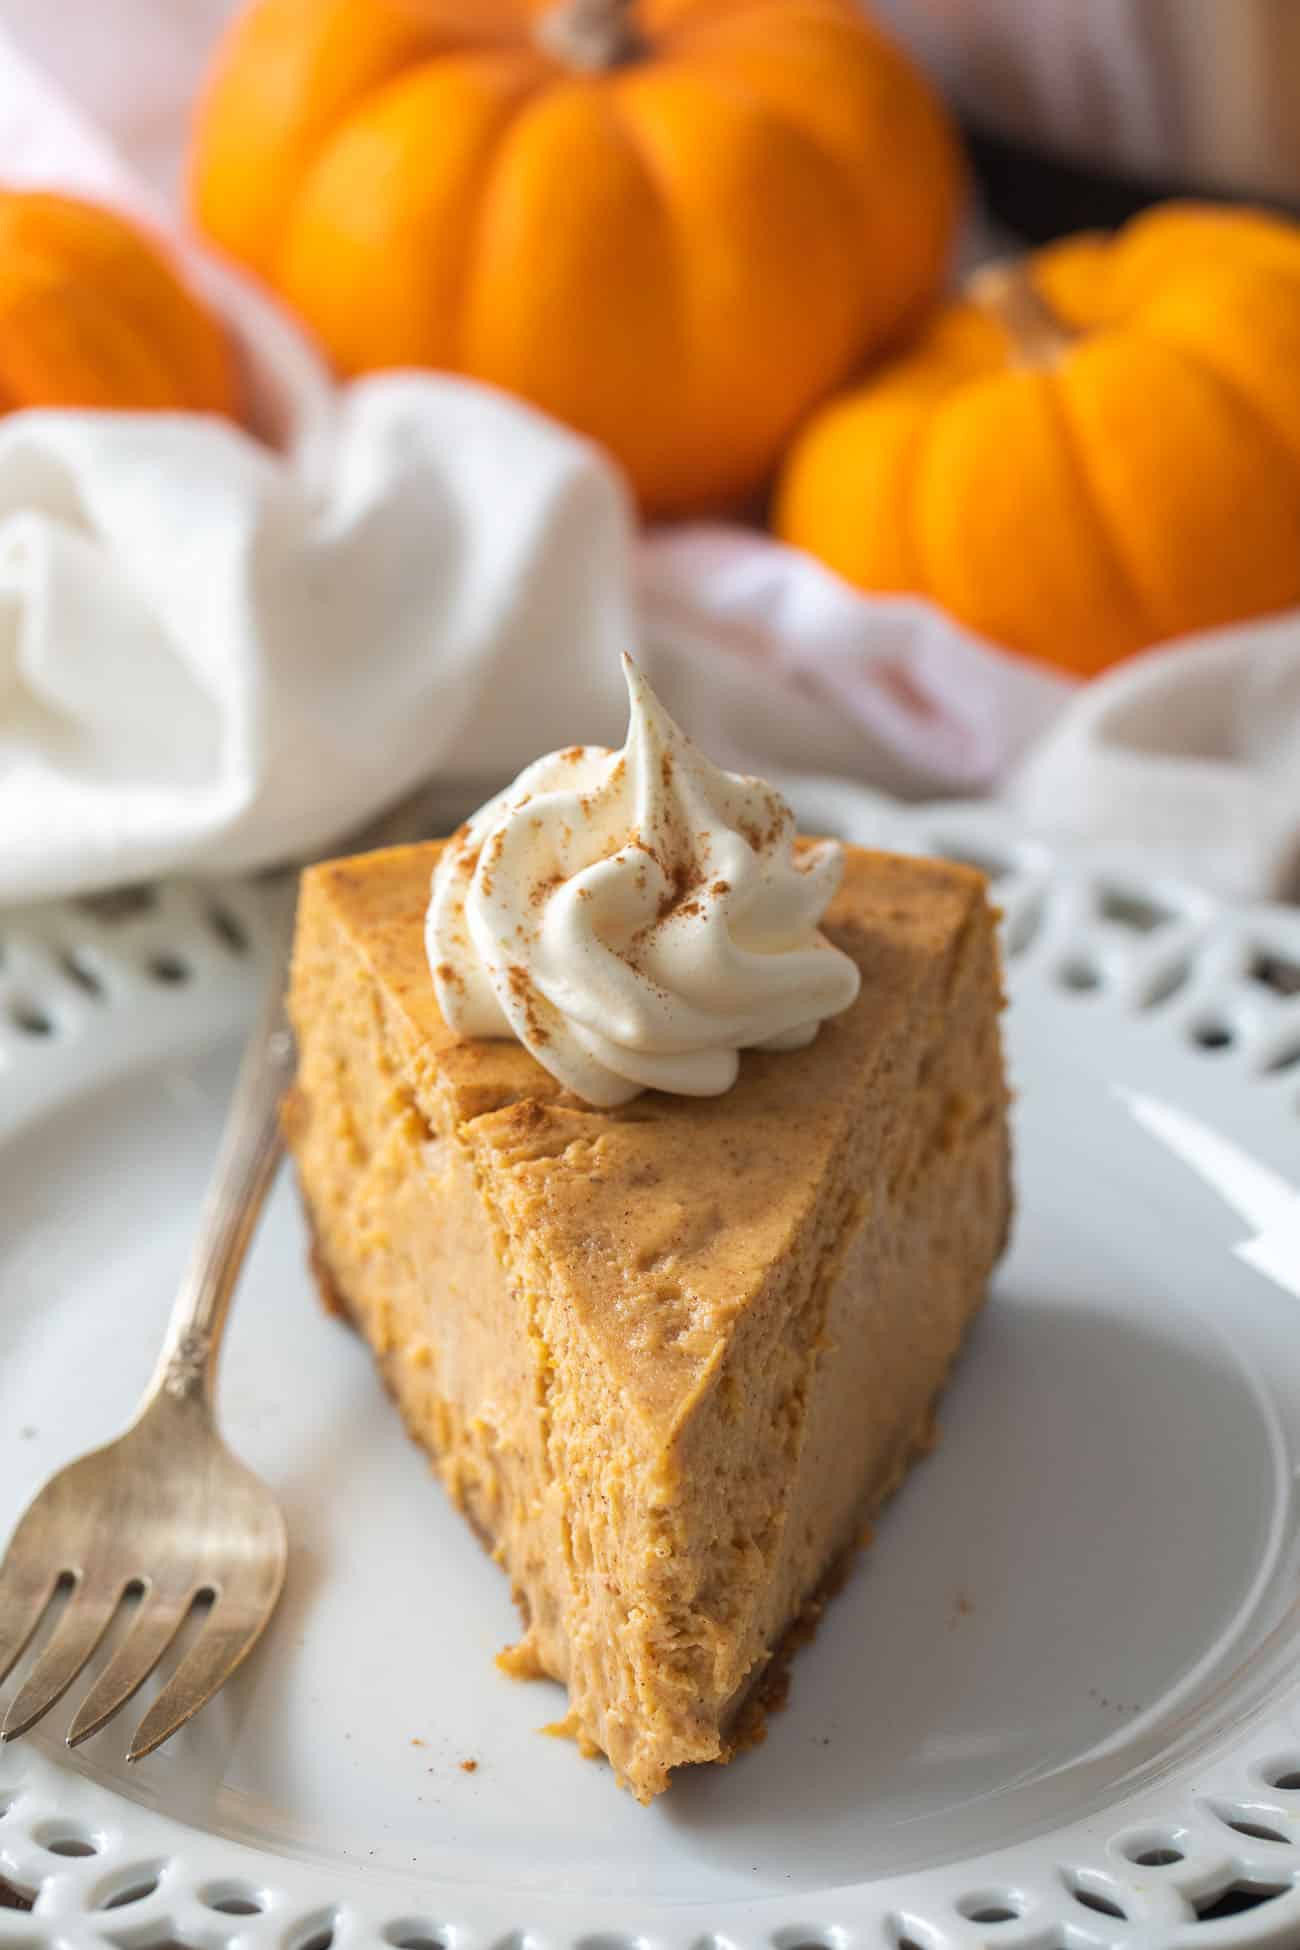 Pressure Cooker Pumpkin Cheesecake Recipe - this easy pressure cooker cheesecake is loaded with creamy pumpkin spice flavor!